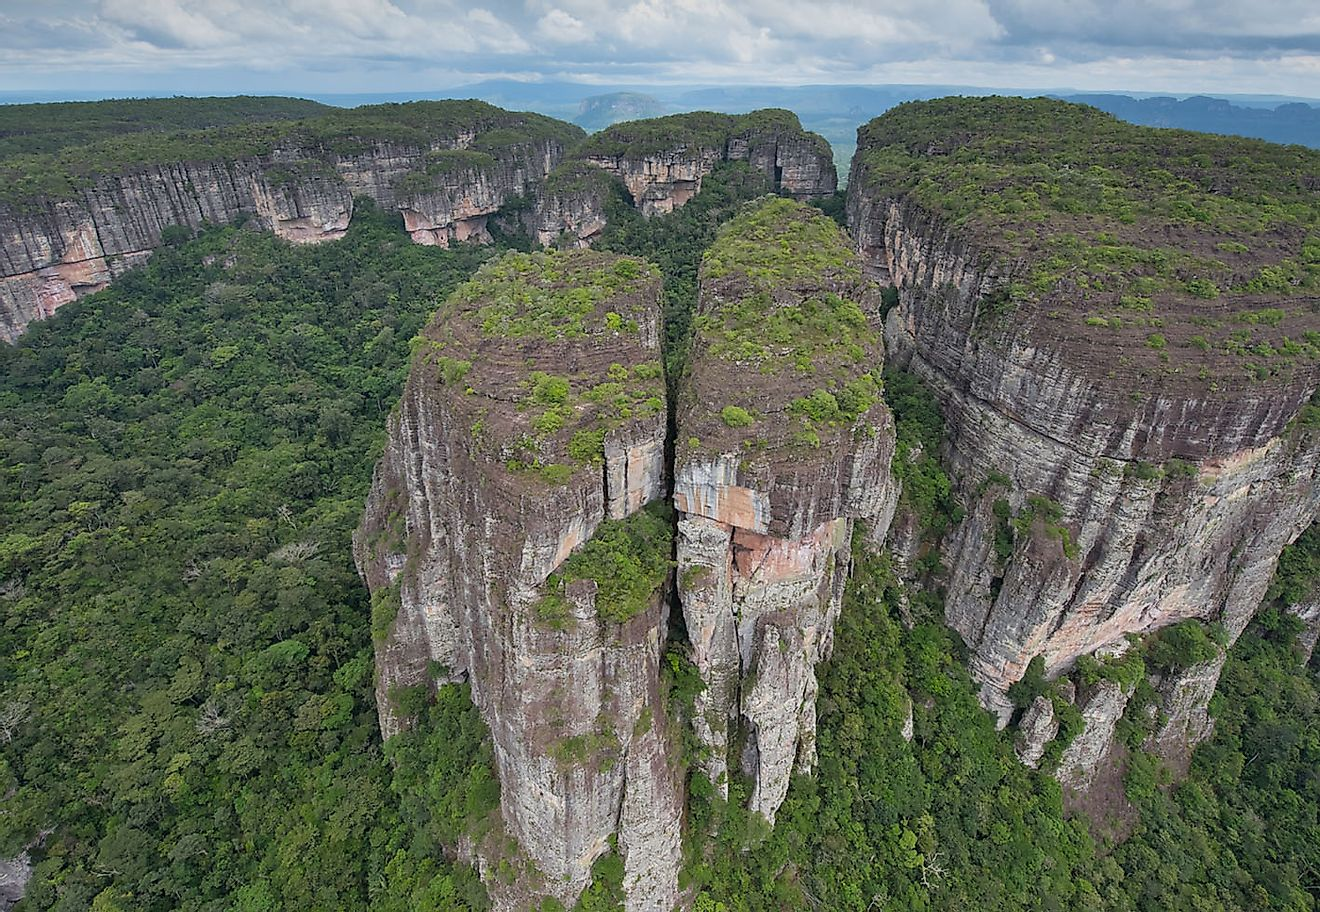 The Maloca of the Jaguar in Colombia is a natural wonder. Image credit: thecitypaperbogota.com